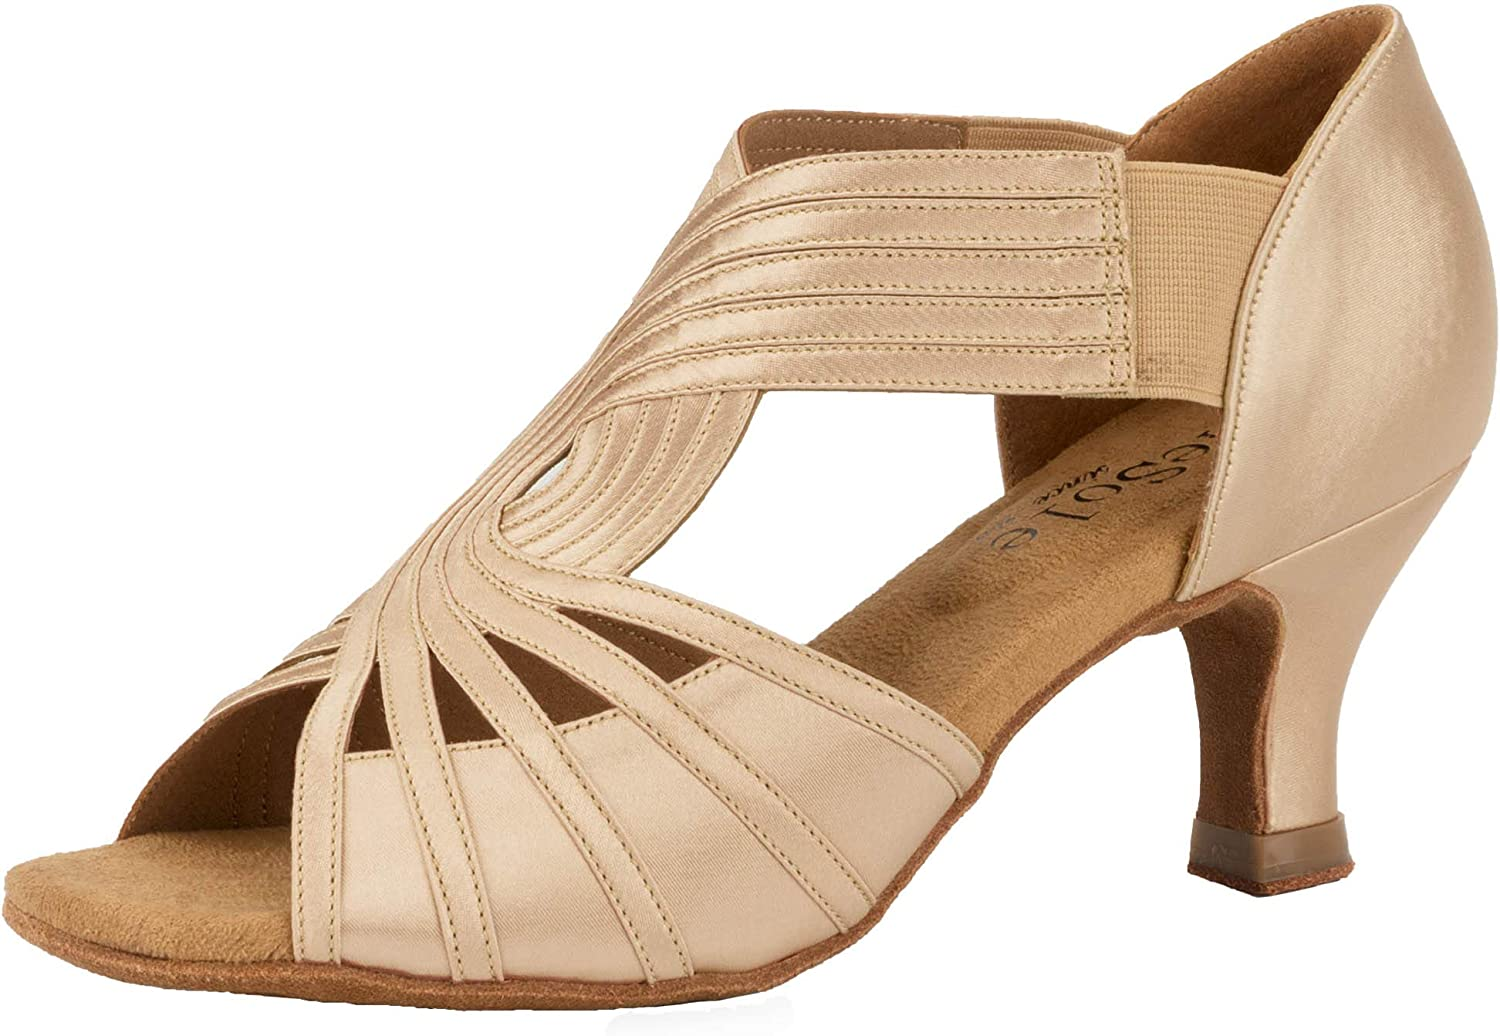 SheSole Women's Strappy Heels Dance Shoes, Super Light for